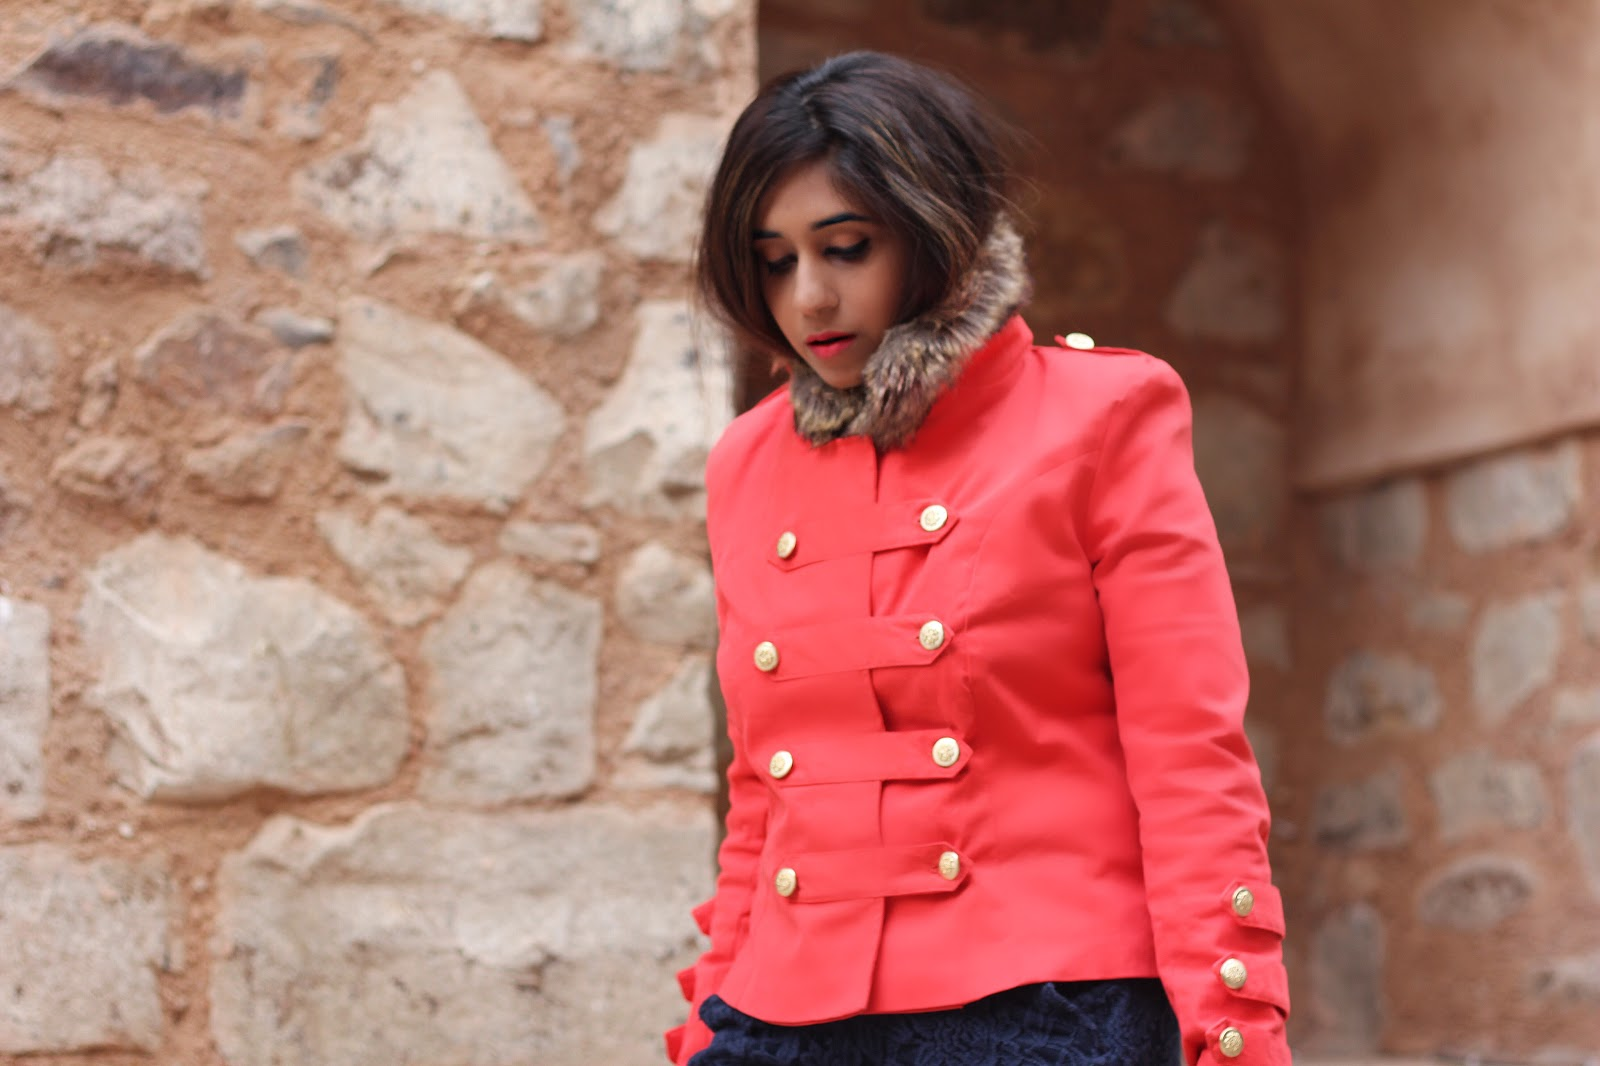 Military Jackets for Women, ebay,amazon, koovs, stalkbuylove